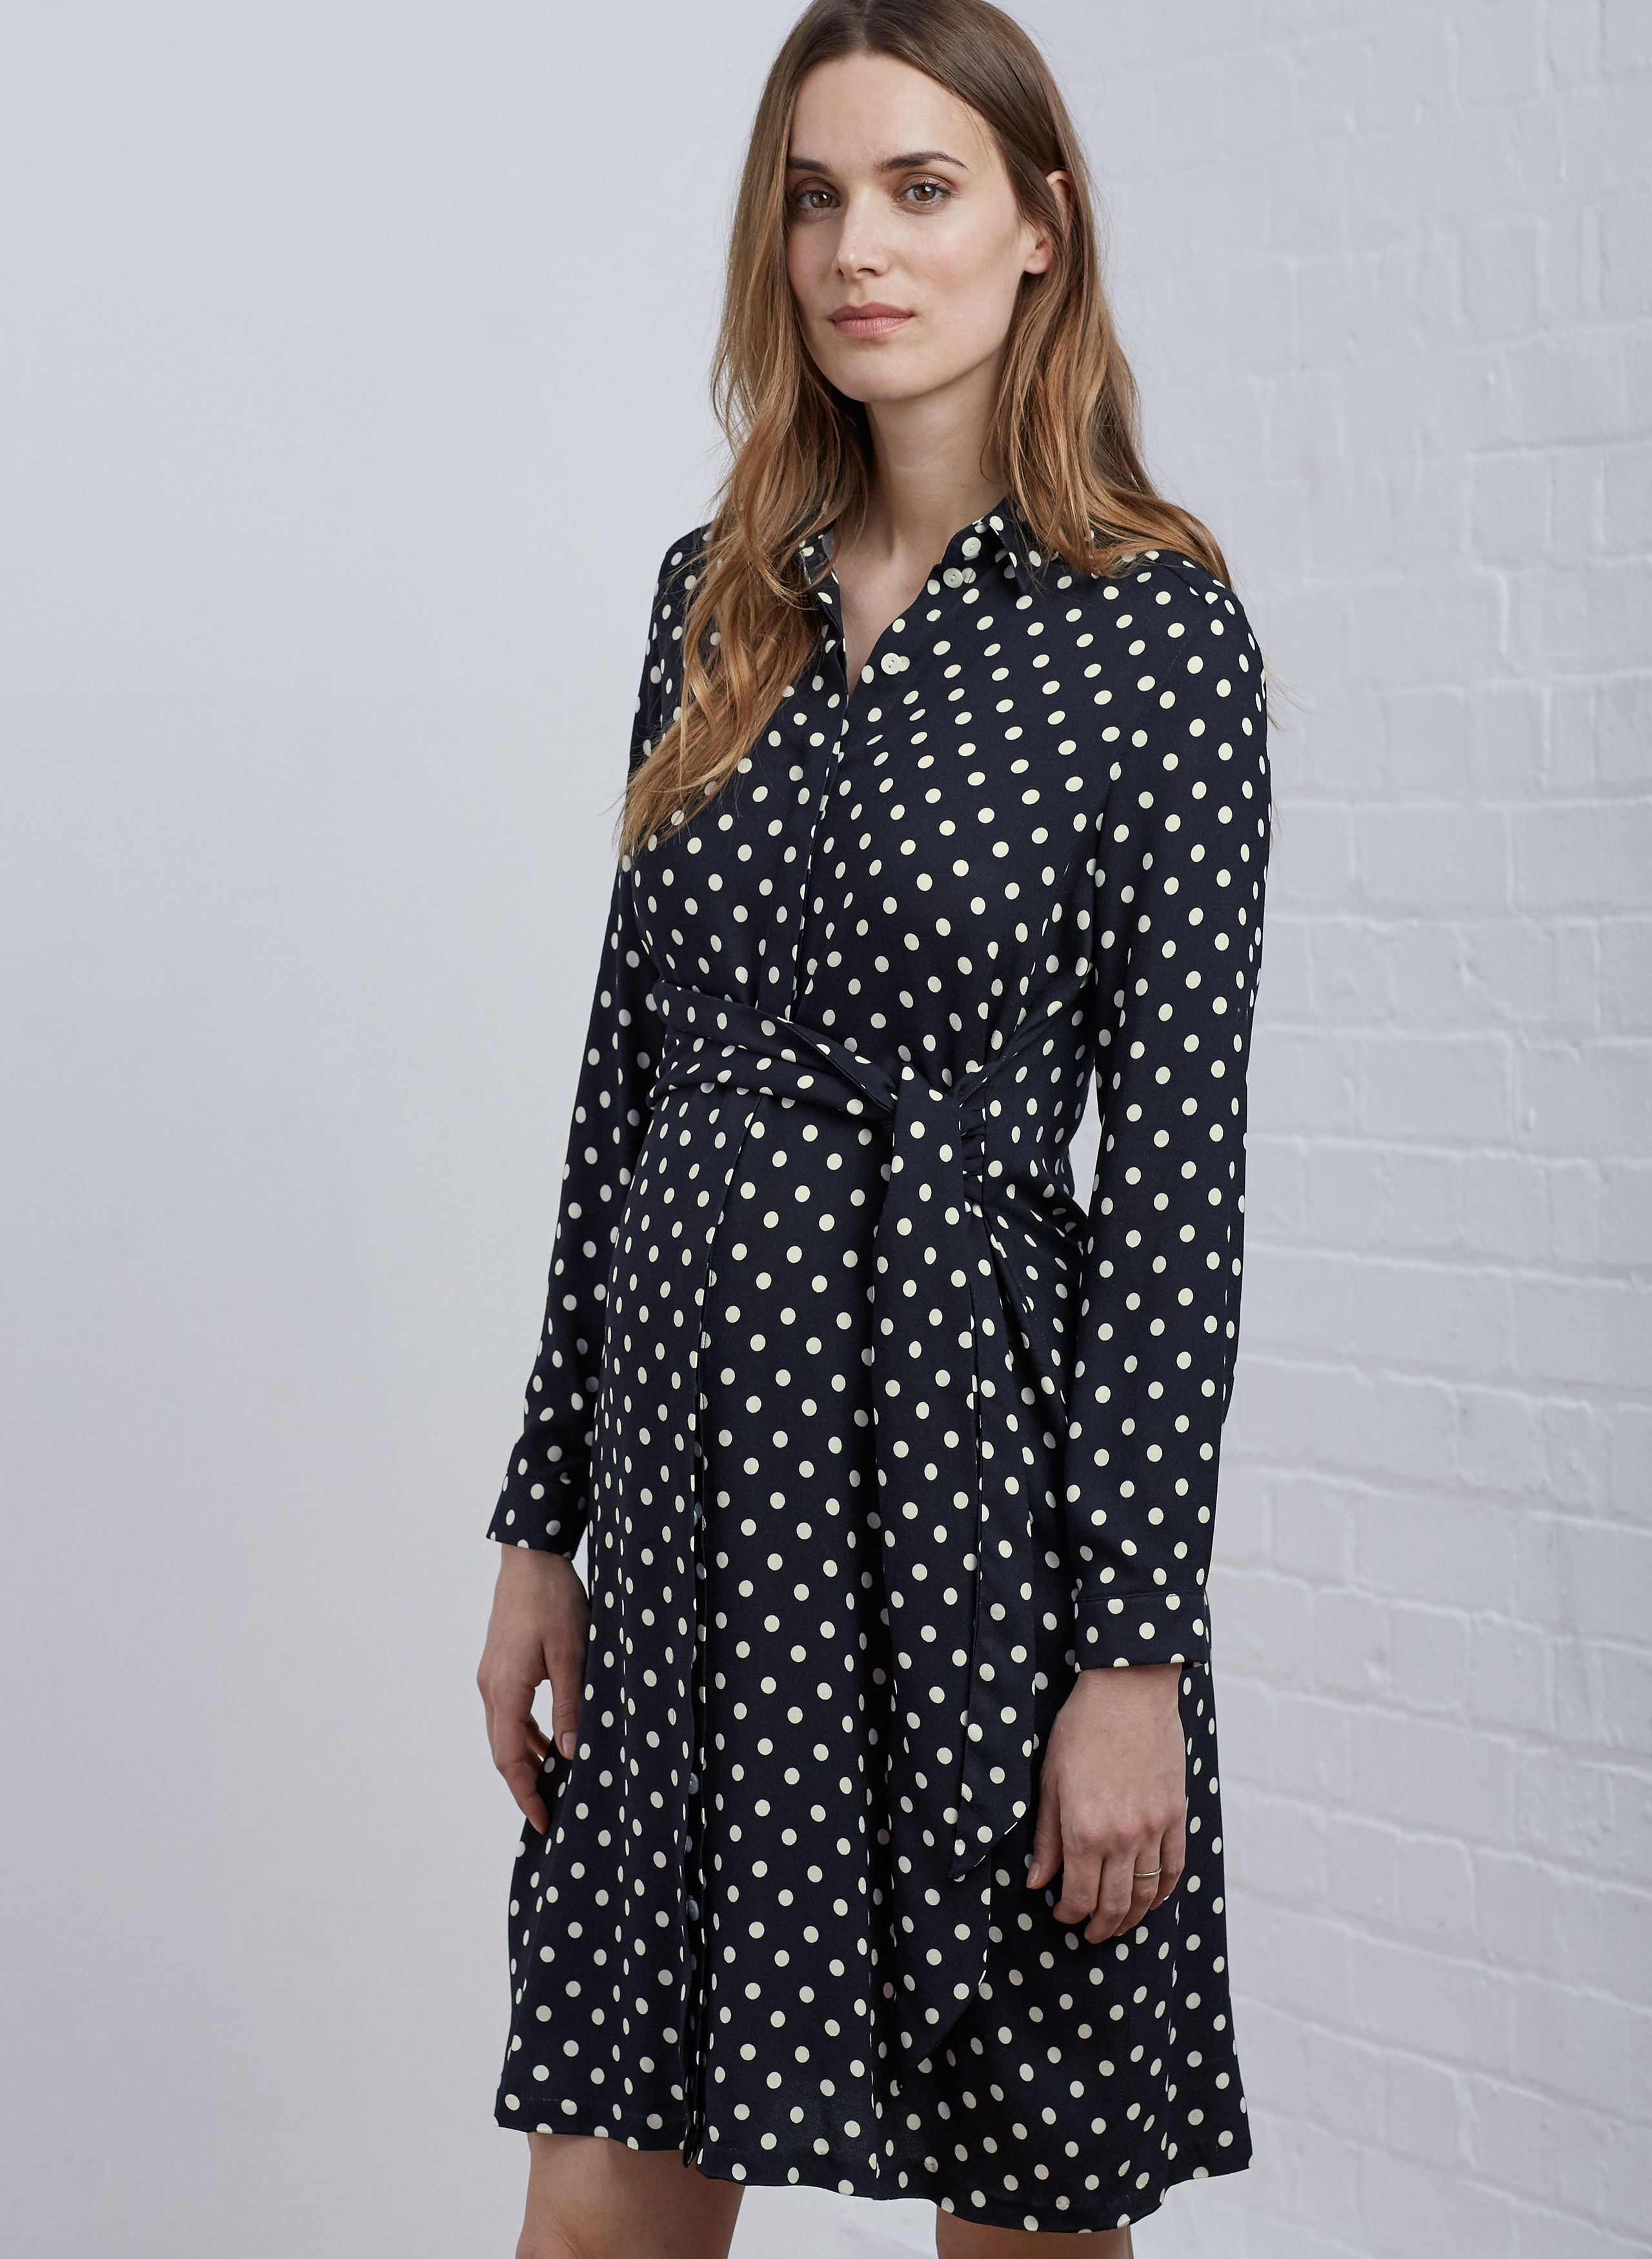 89ede1e180e52 Elisha Maternity Shirt Dress in [colour] at Isabella Oliver. Shop our  luxury collection today for stylish, premium quality maternity clothes that  will last.